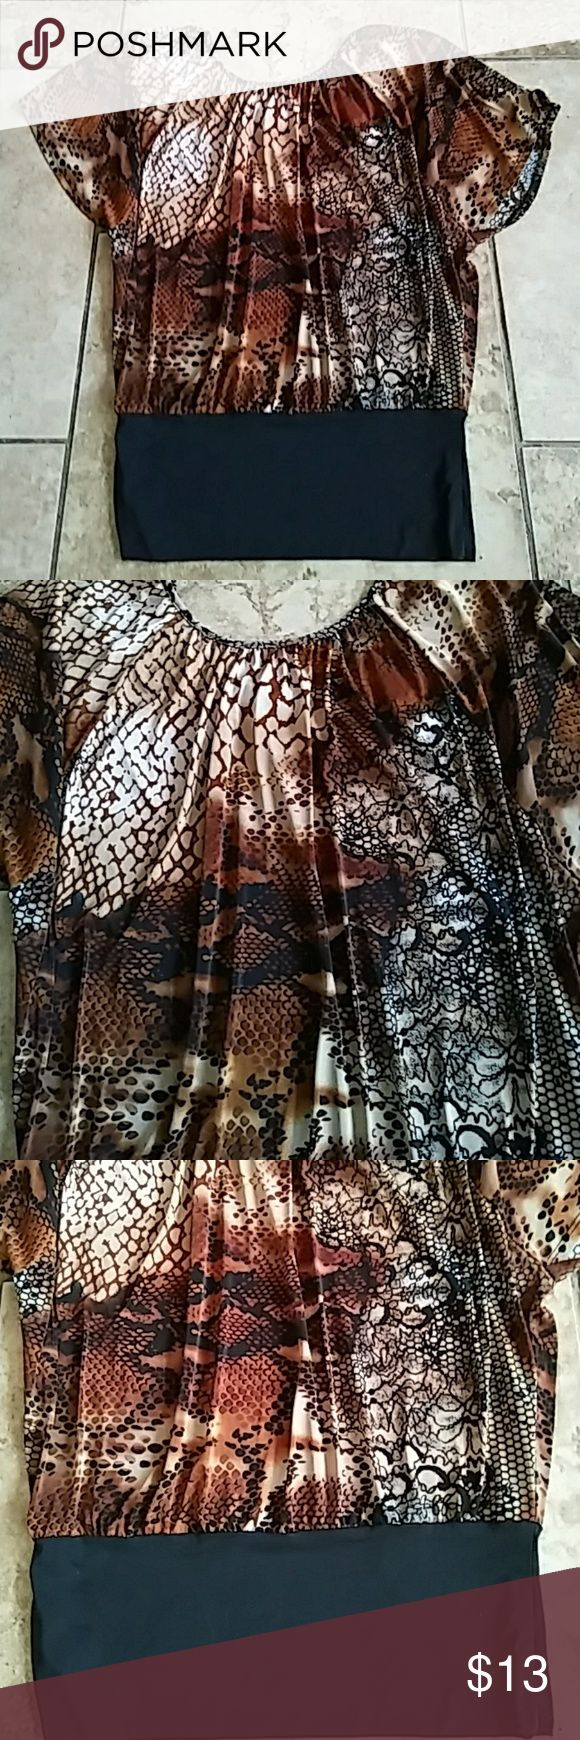 Womens sz.L luna tikis animal print blouse!! Womens size large sexy animal print luna tikis brand blouse in like new condition. It is loose fitted with tighter bottom black waist. Thanks Tops Blouses